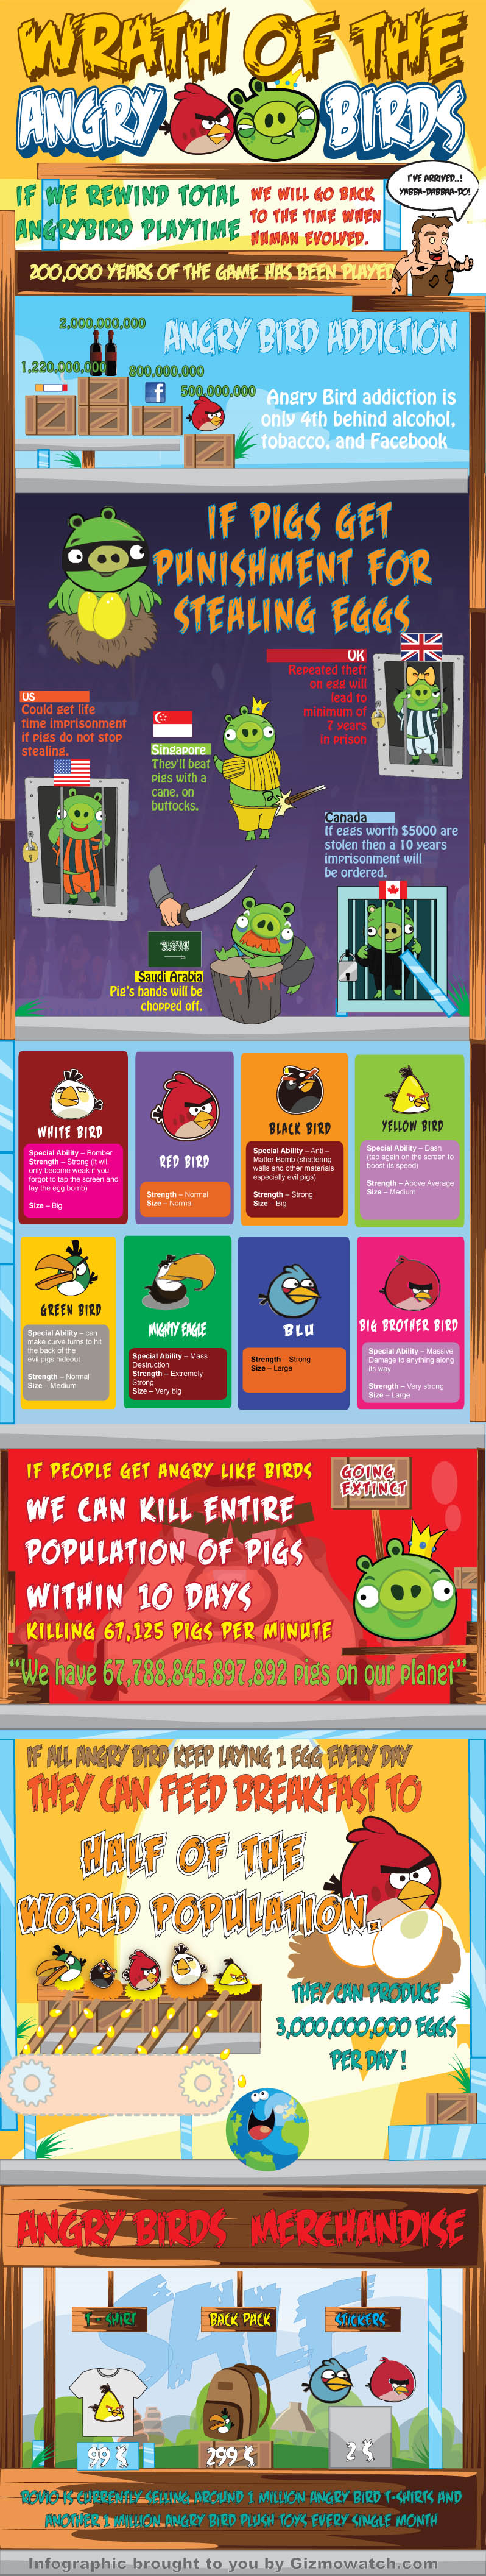 Wrath of the Angry Birds Sensation